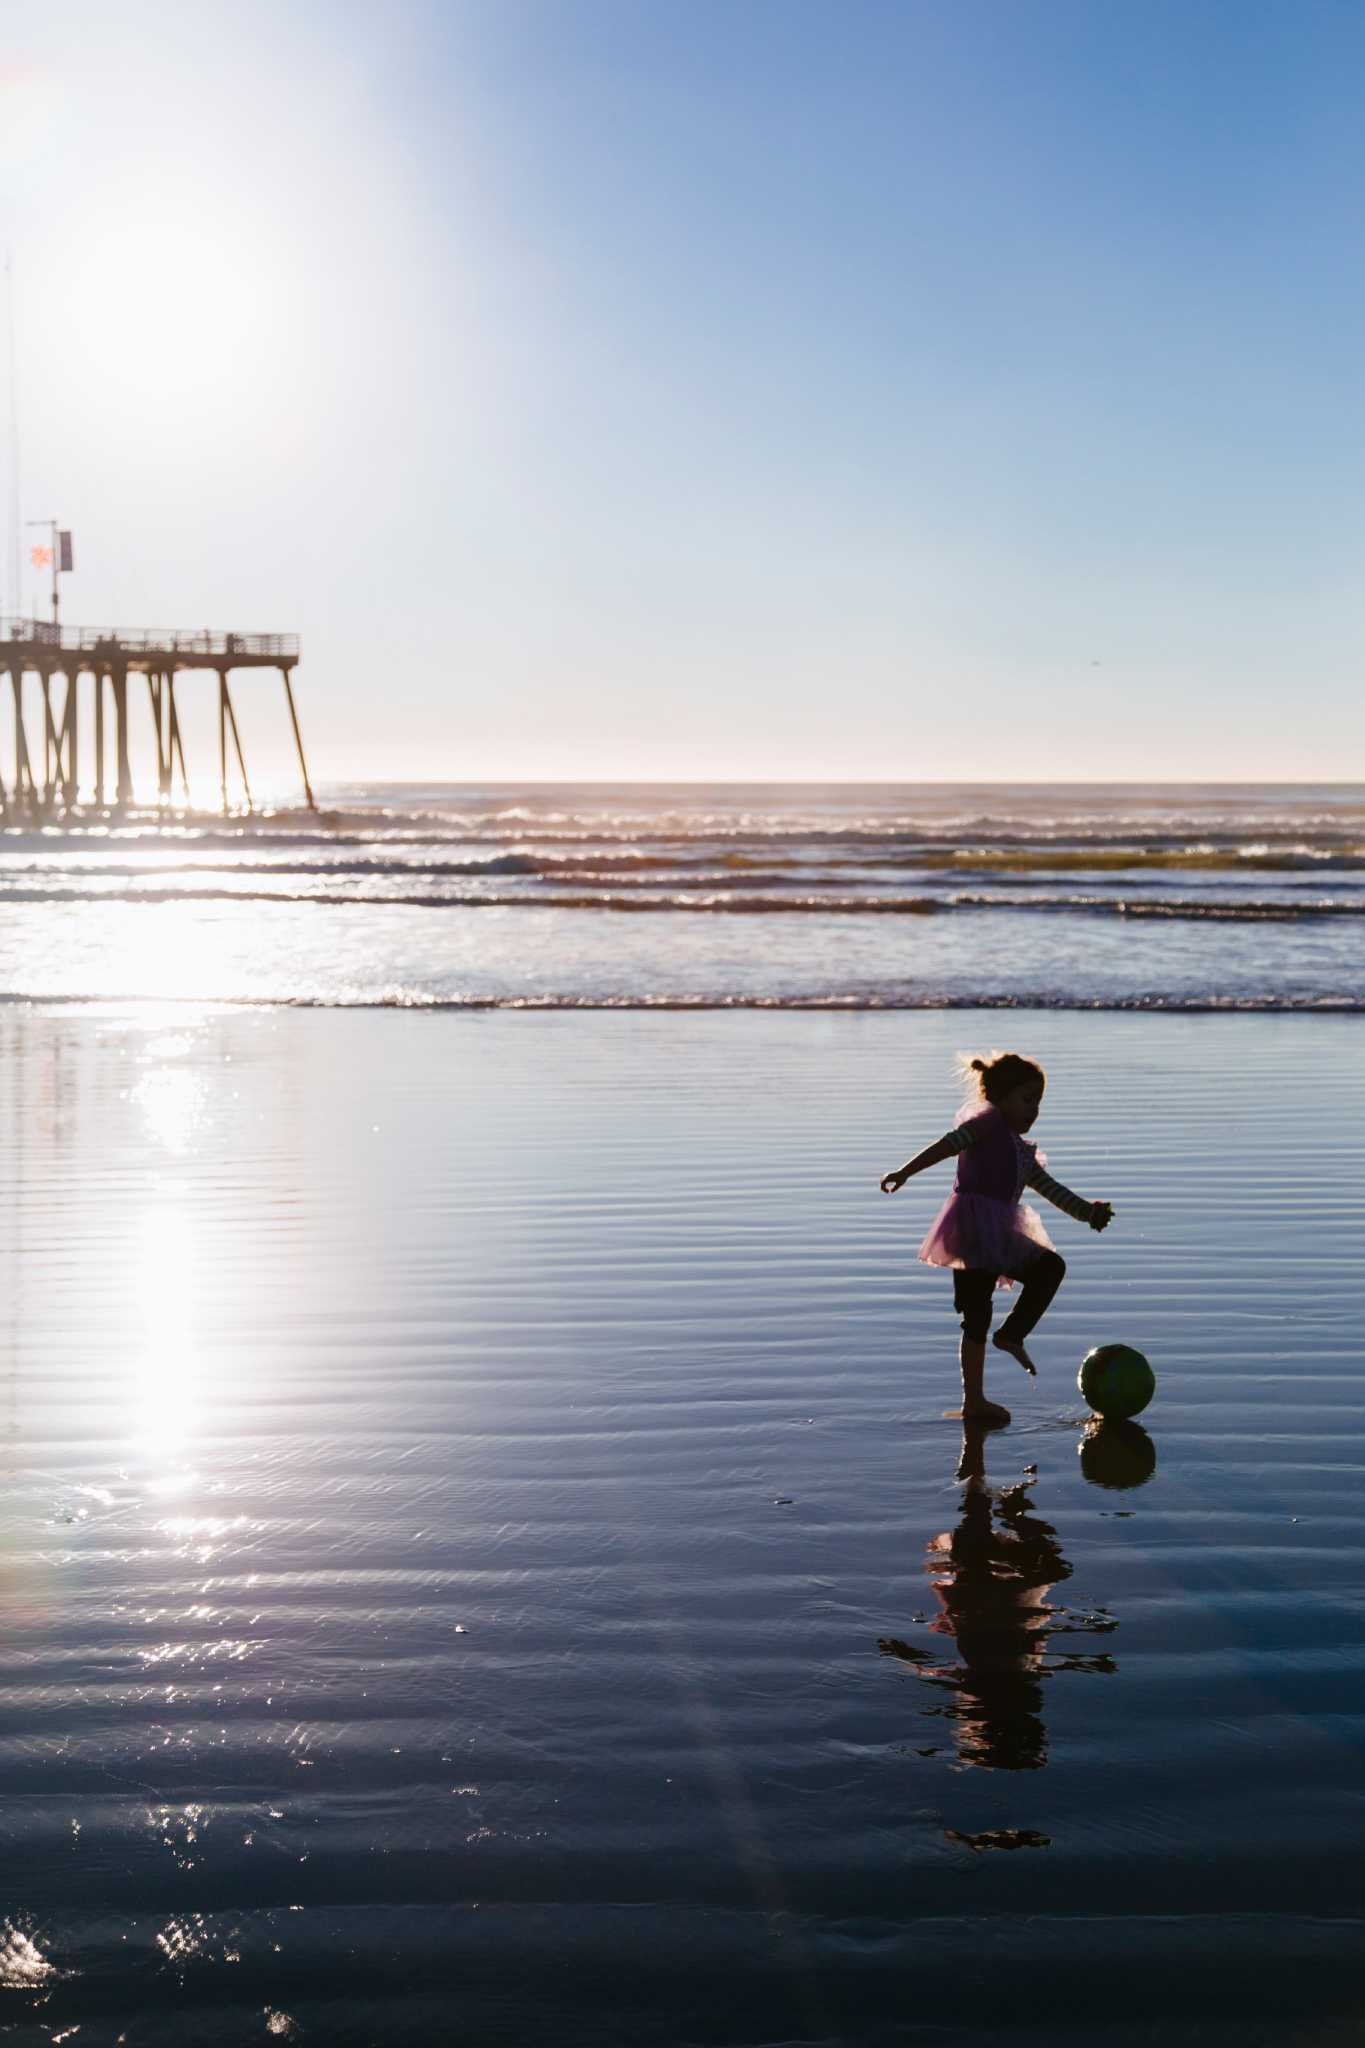 Winter Is A Splendid Time To Visit Pismo Beach